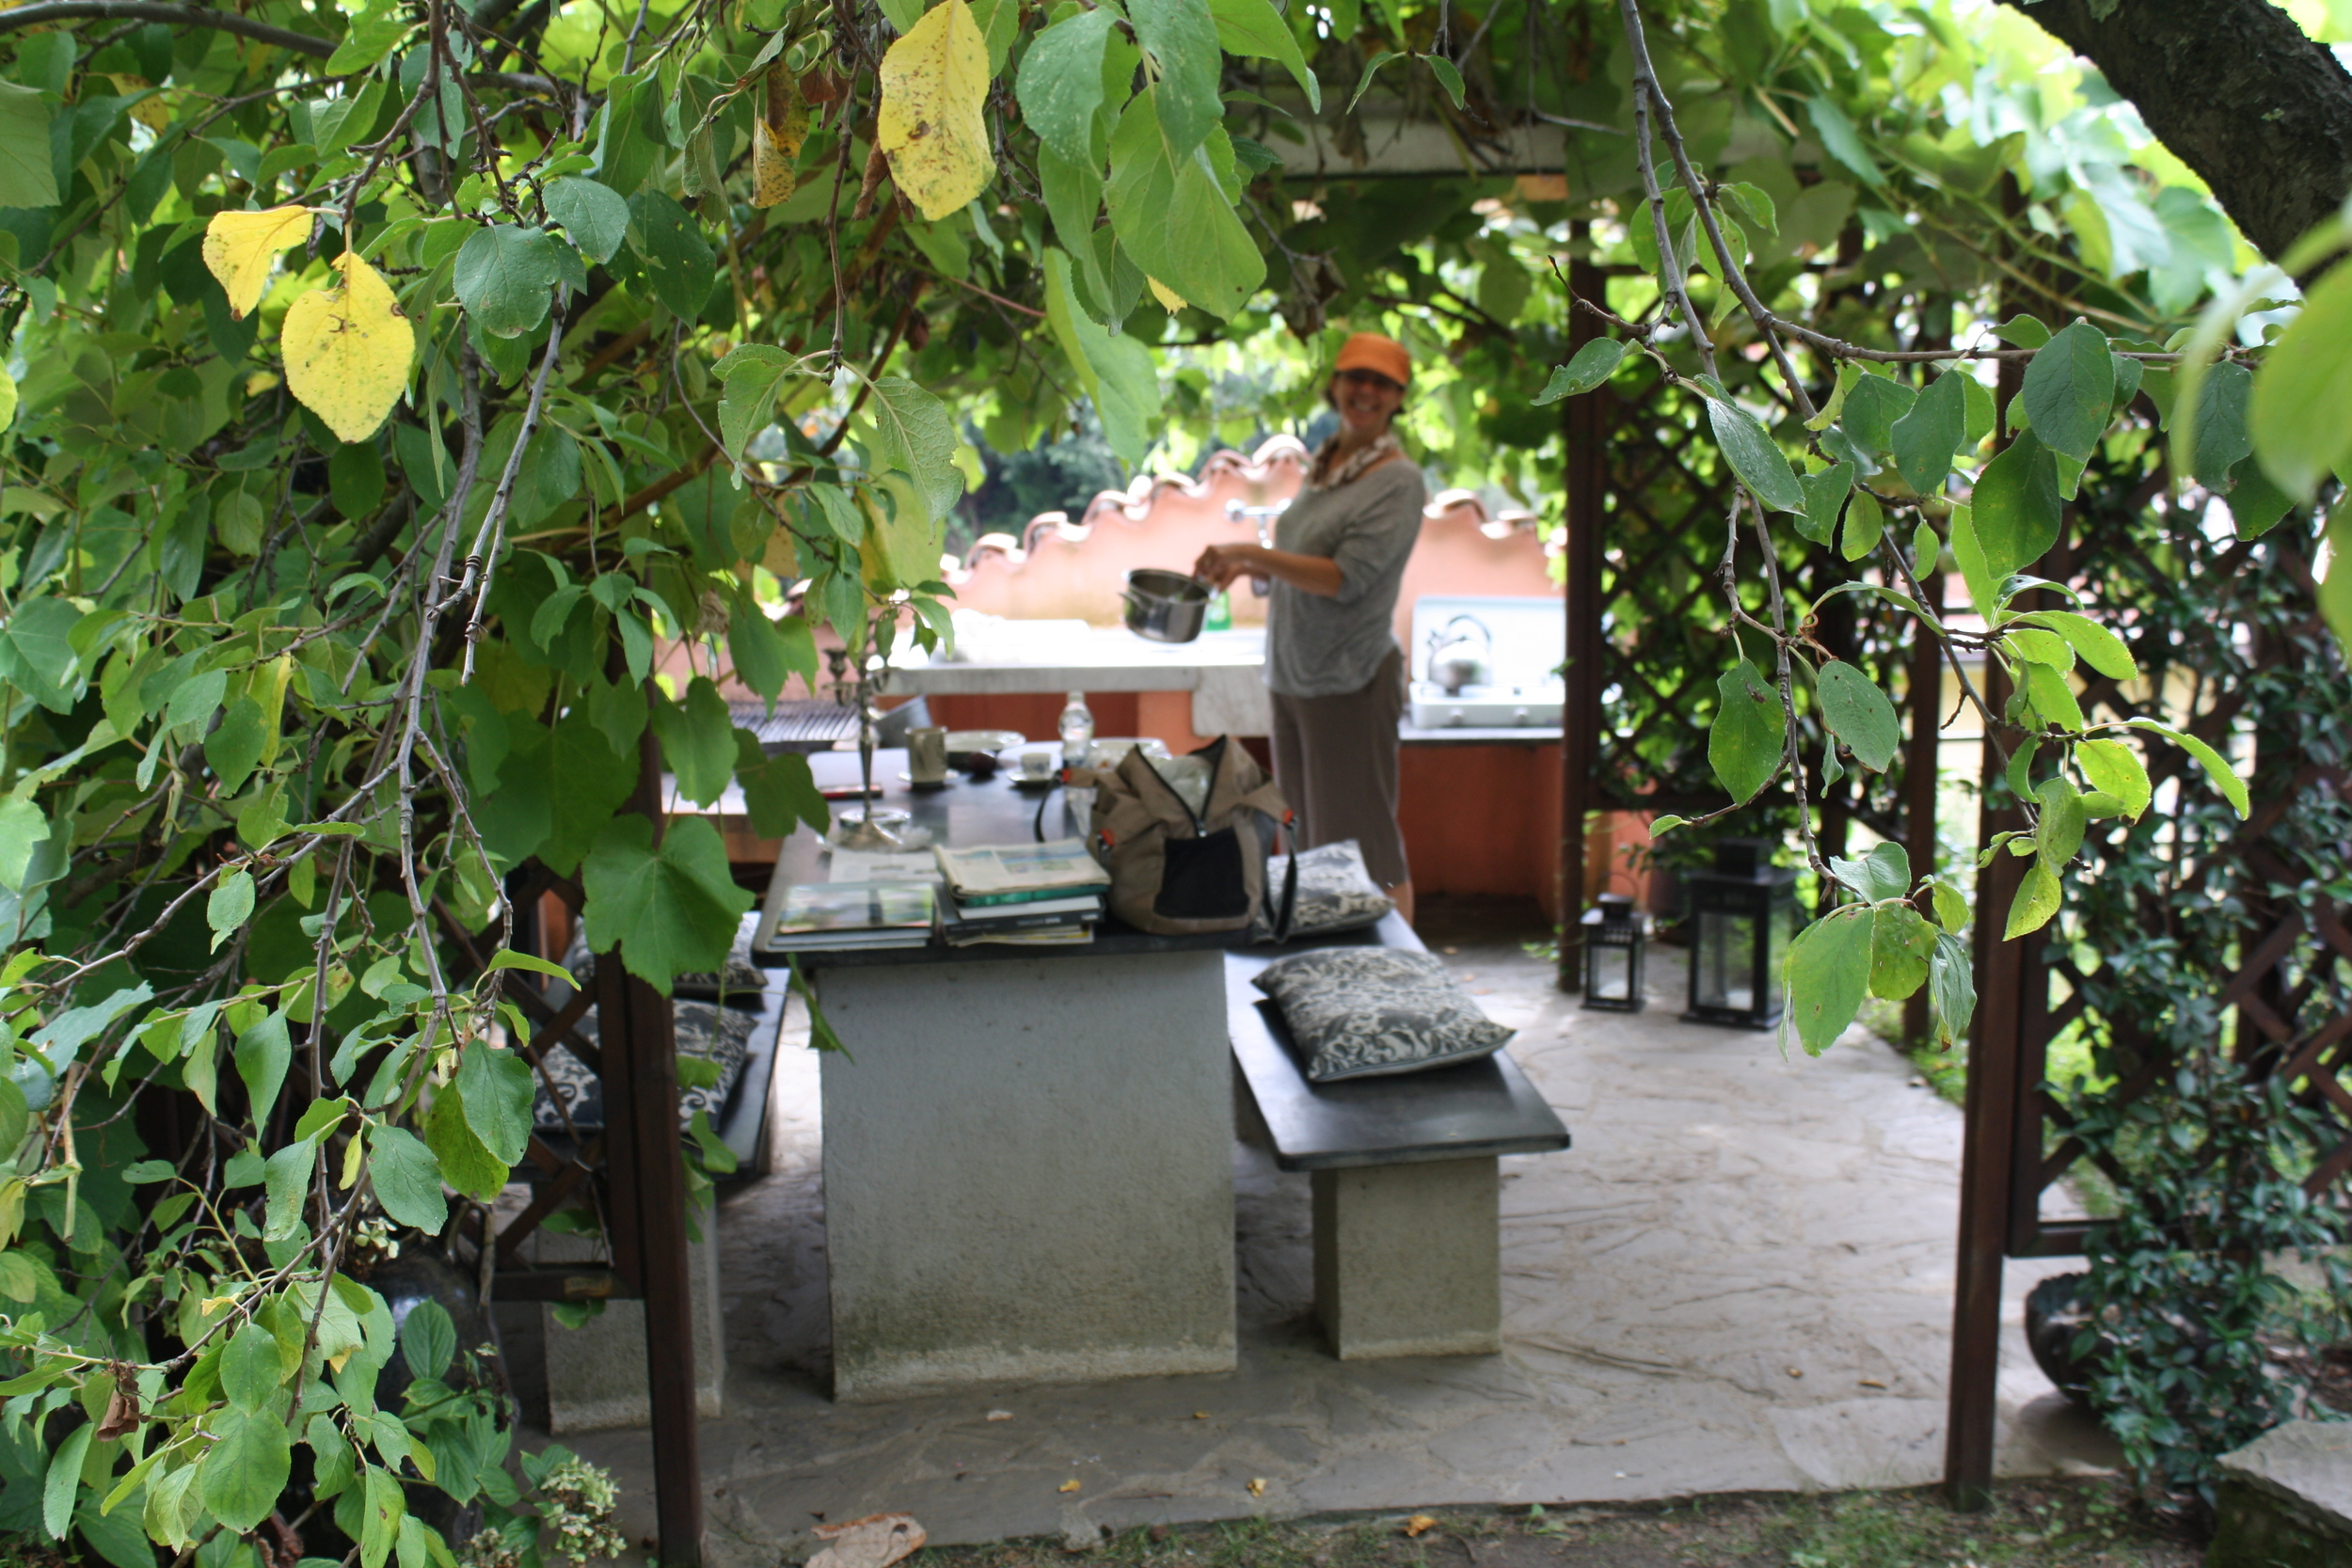 We had a little outdoor kitchen with a table to cook on.